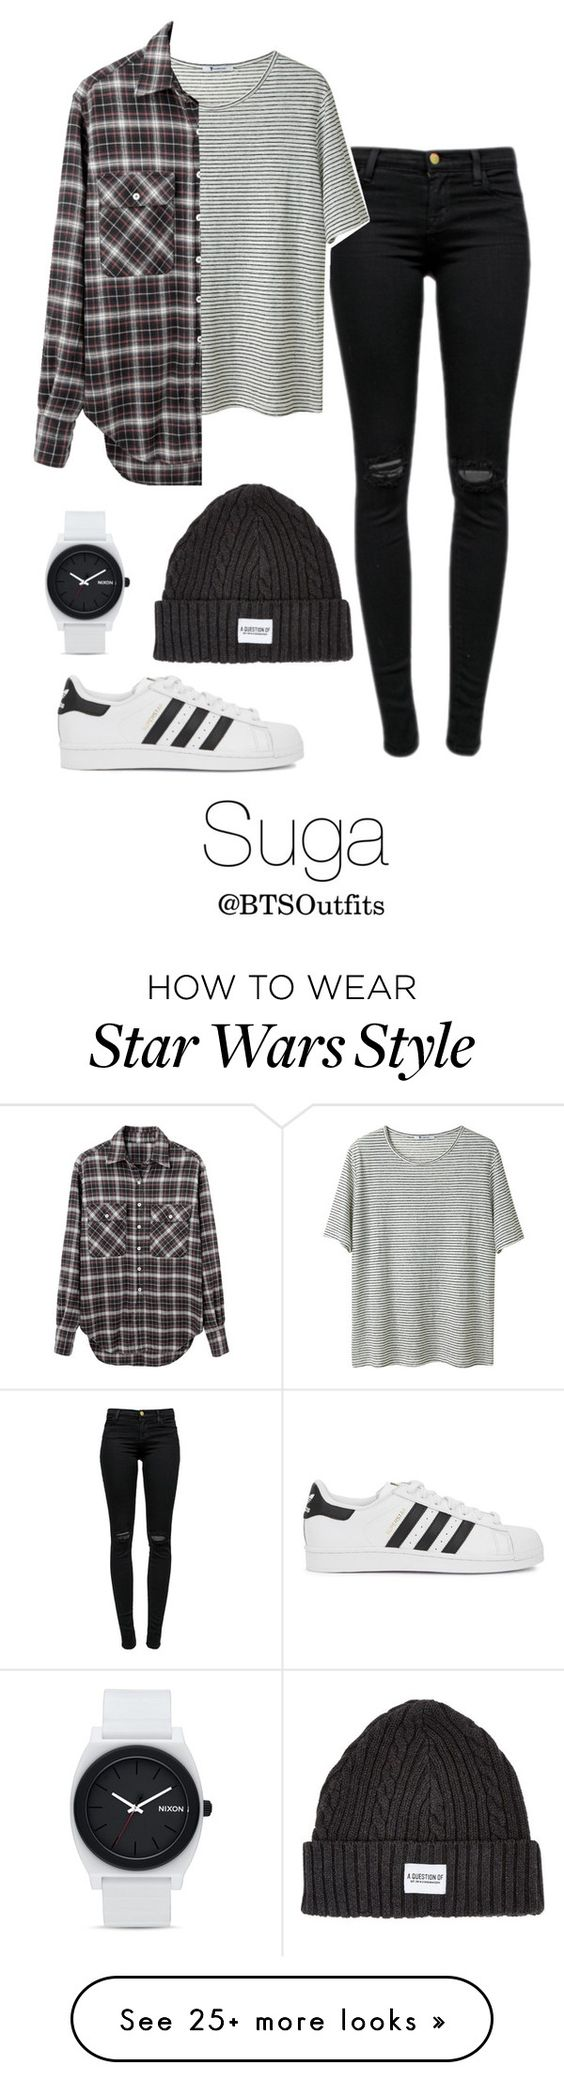 """When you First Meet Him: Suga"" by btsoutfits on Polyvore featuring J Brand, T By Alexander Wang, A Question Of, adidas Originals, R13 and Nixon"